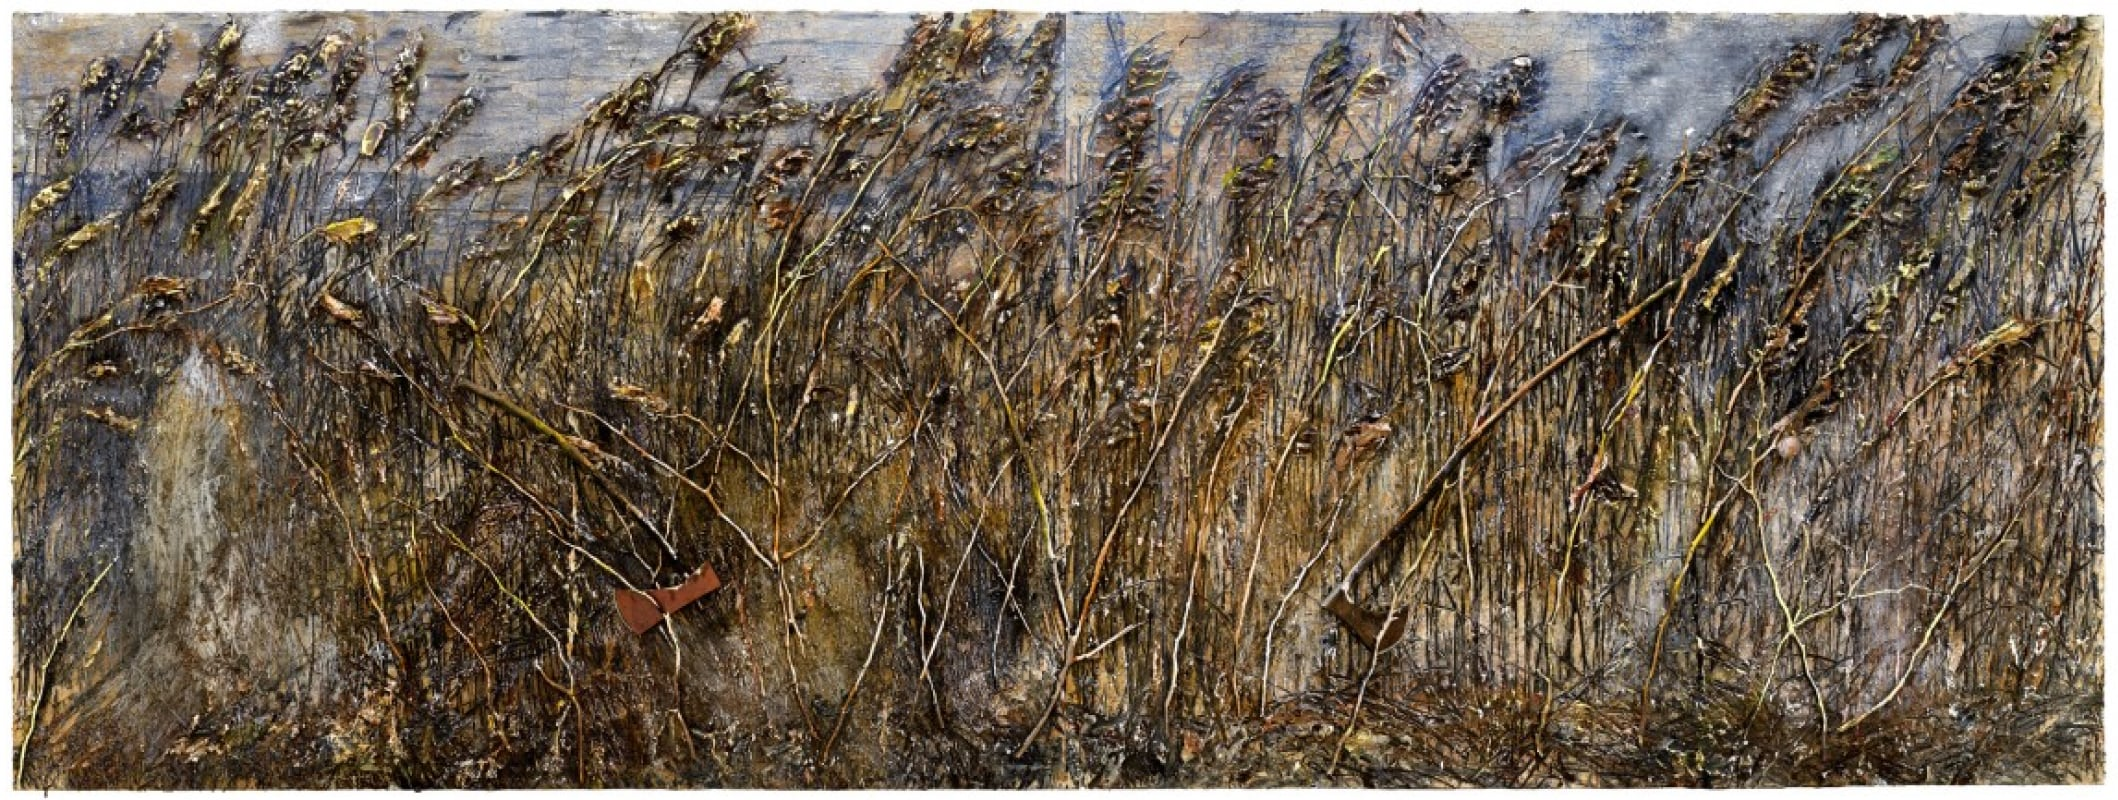 Anselm Kiefer — Right Wing, Left Wing, 2019